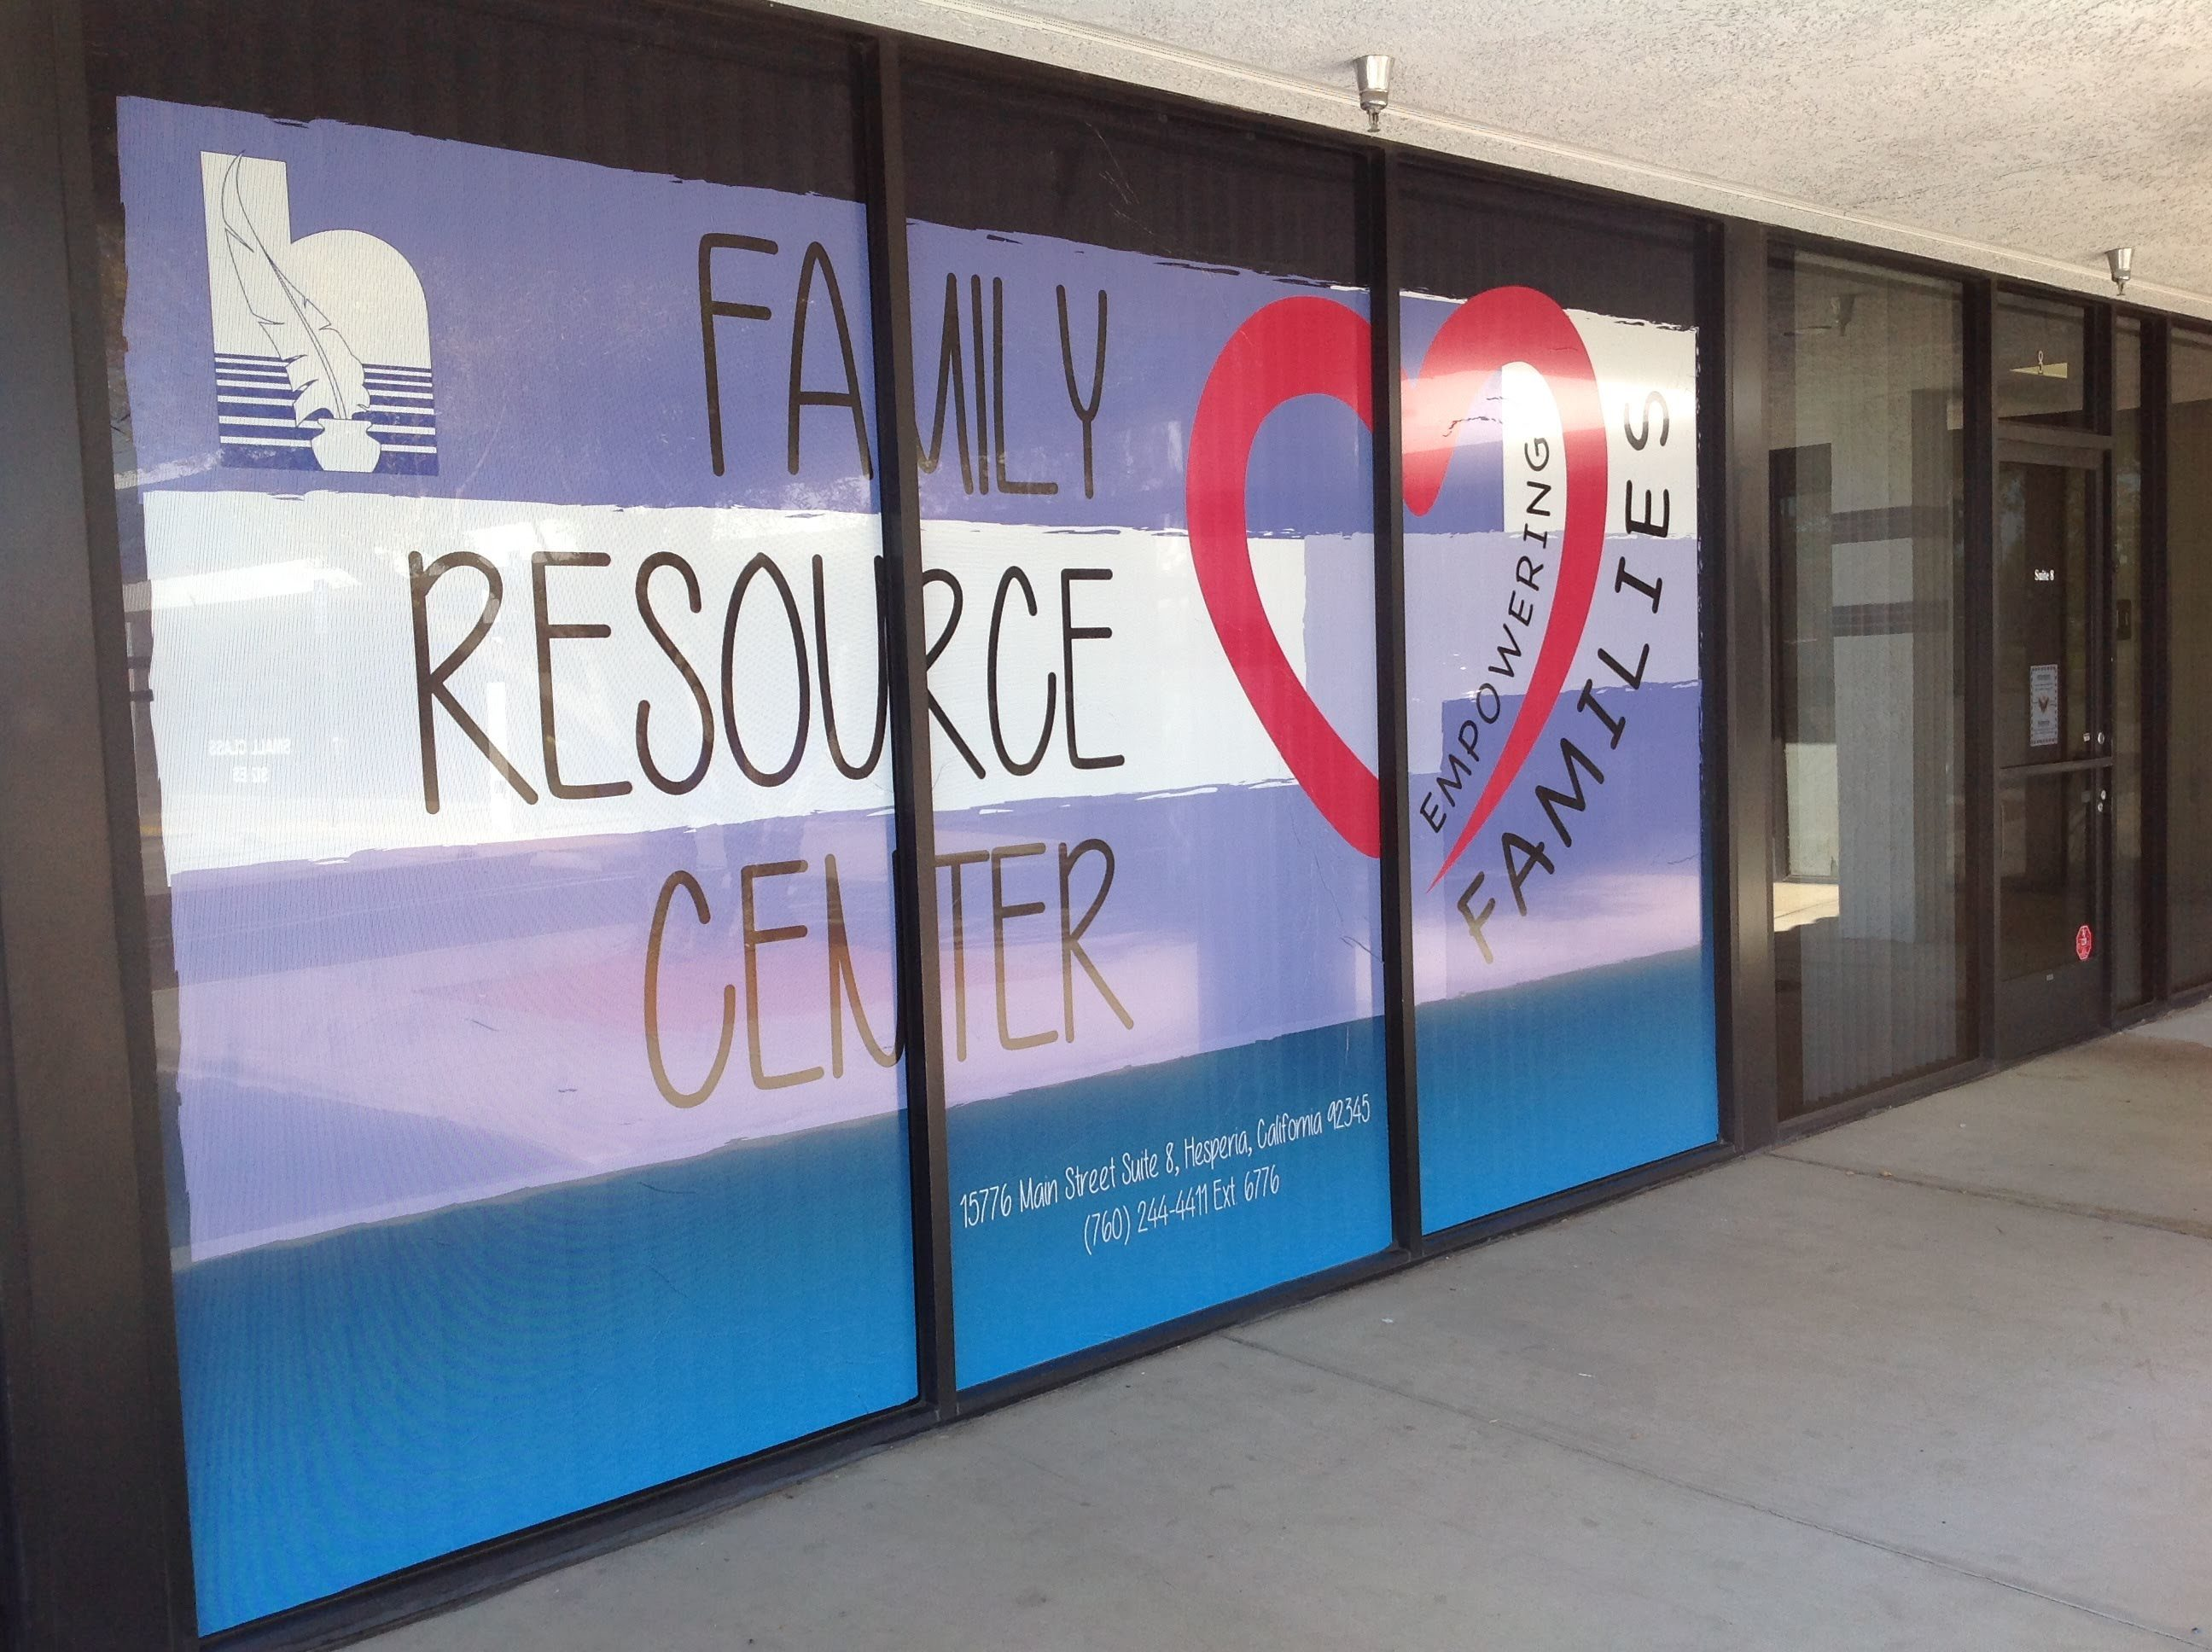 Family Resource Center Office Entrance